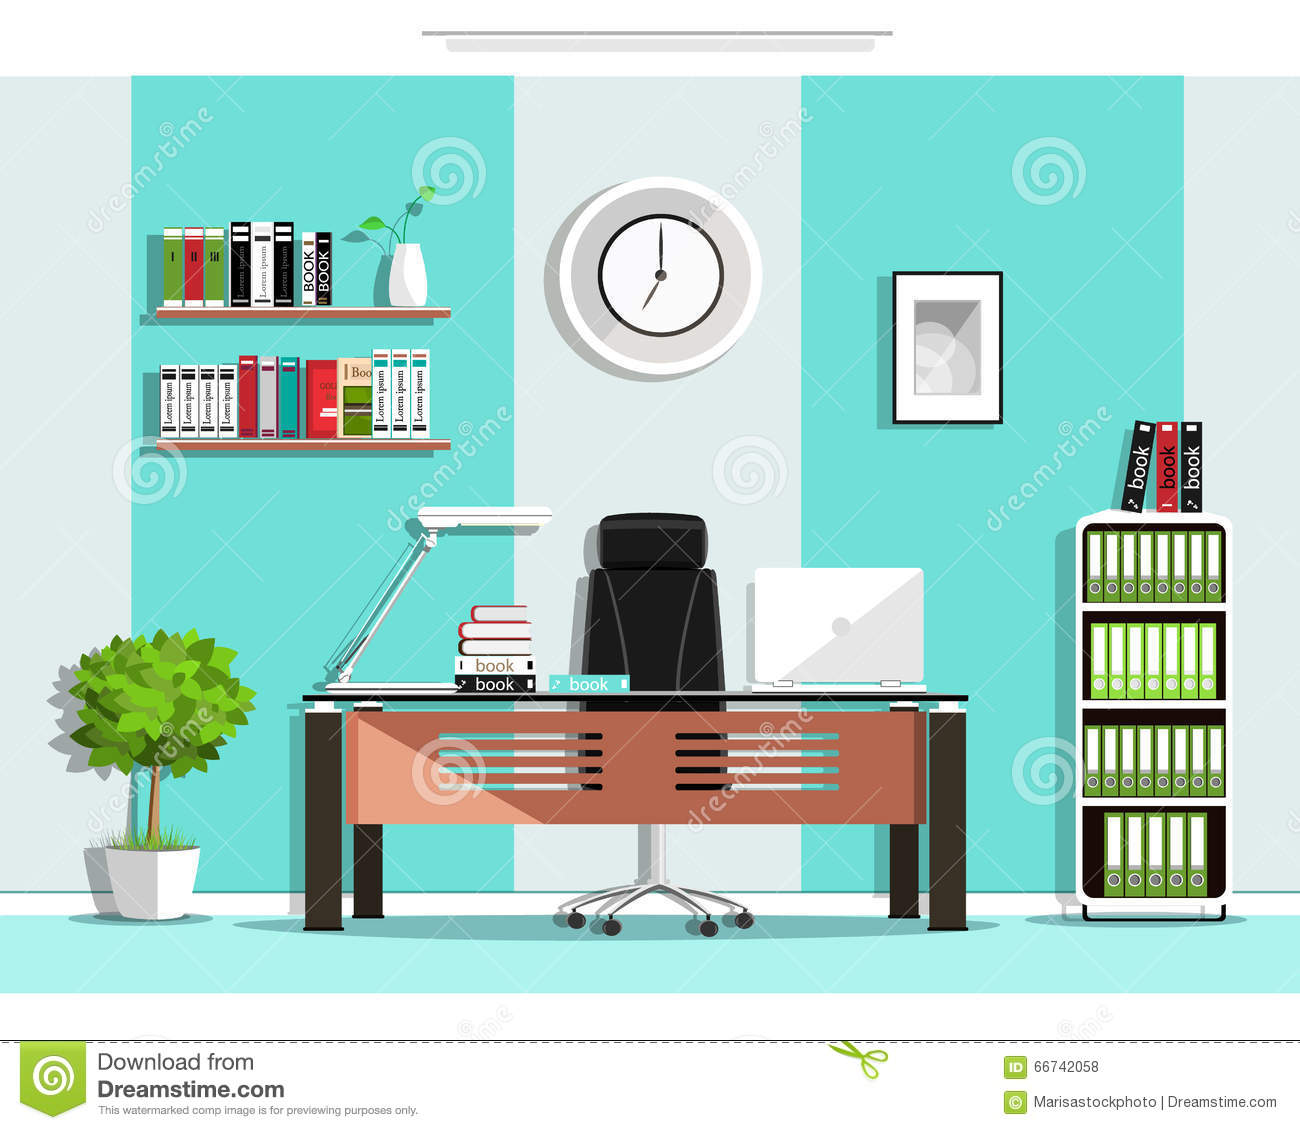 Egonomics Libro Cool Graphic Office Room Interior Design With Furniture